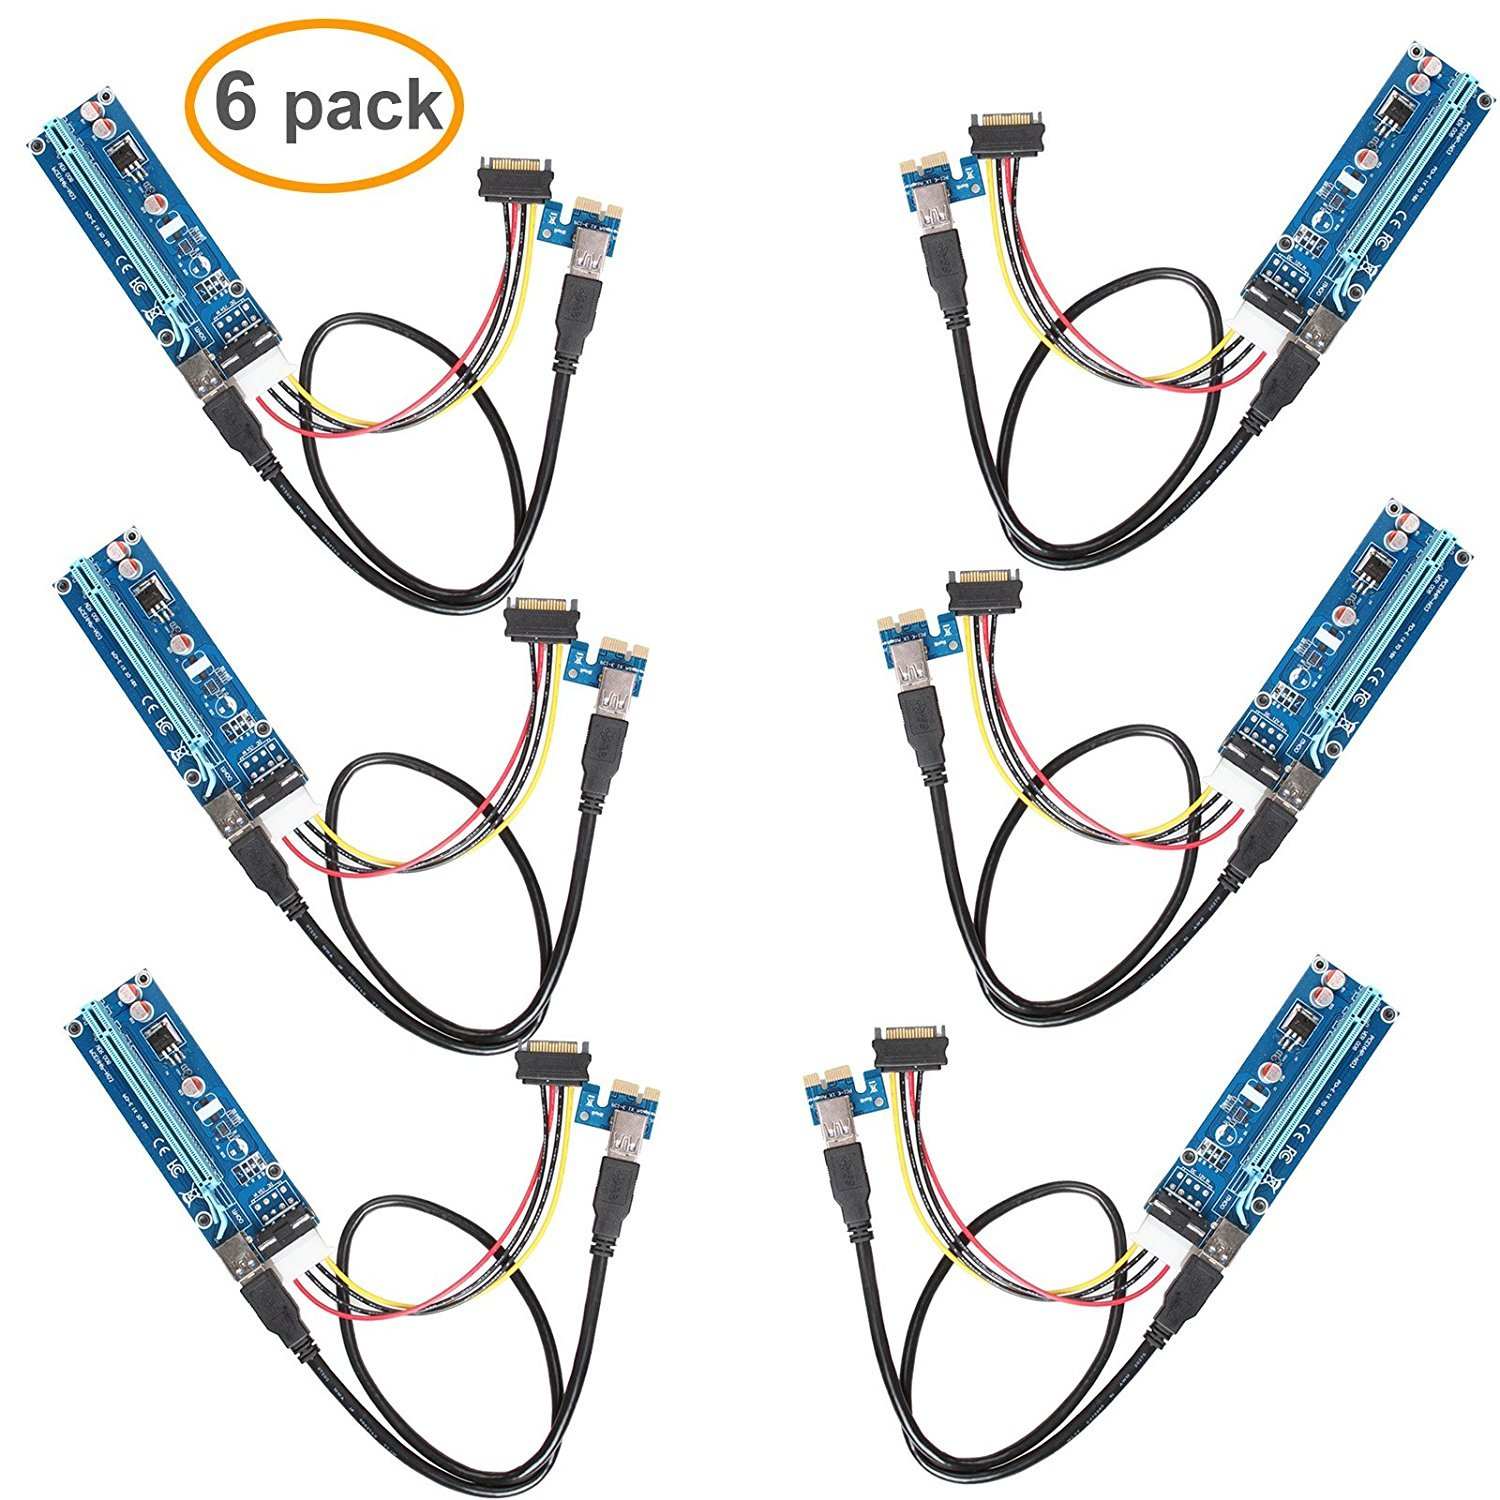 LINESO 6Pack PCIe VER 006 PCI-E 1X to 16X Powered Riser Adapter Card w/60 cm USB 3.0 Extension Cable & MOLEX to SATA Power Cable - GPU Riser Adapter Ethereum Mining ETH (6-Pack V006)